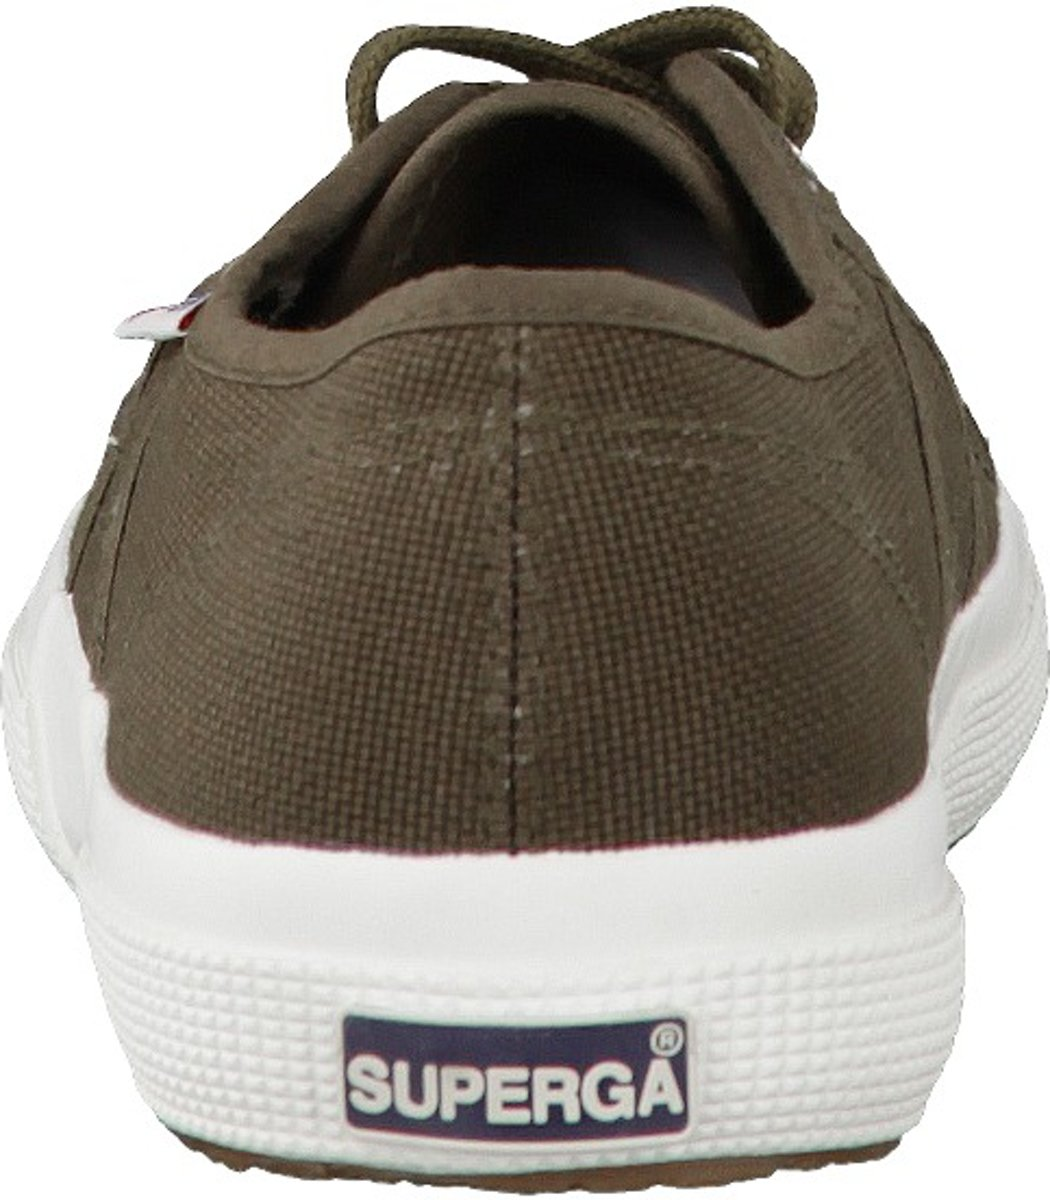 Baskets Superga Vert Chaussures Unisexe Taille 40 IV8ME0MCU